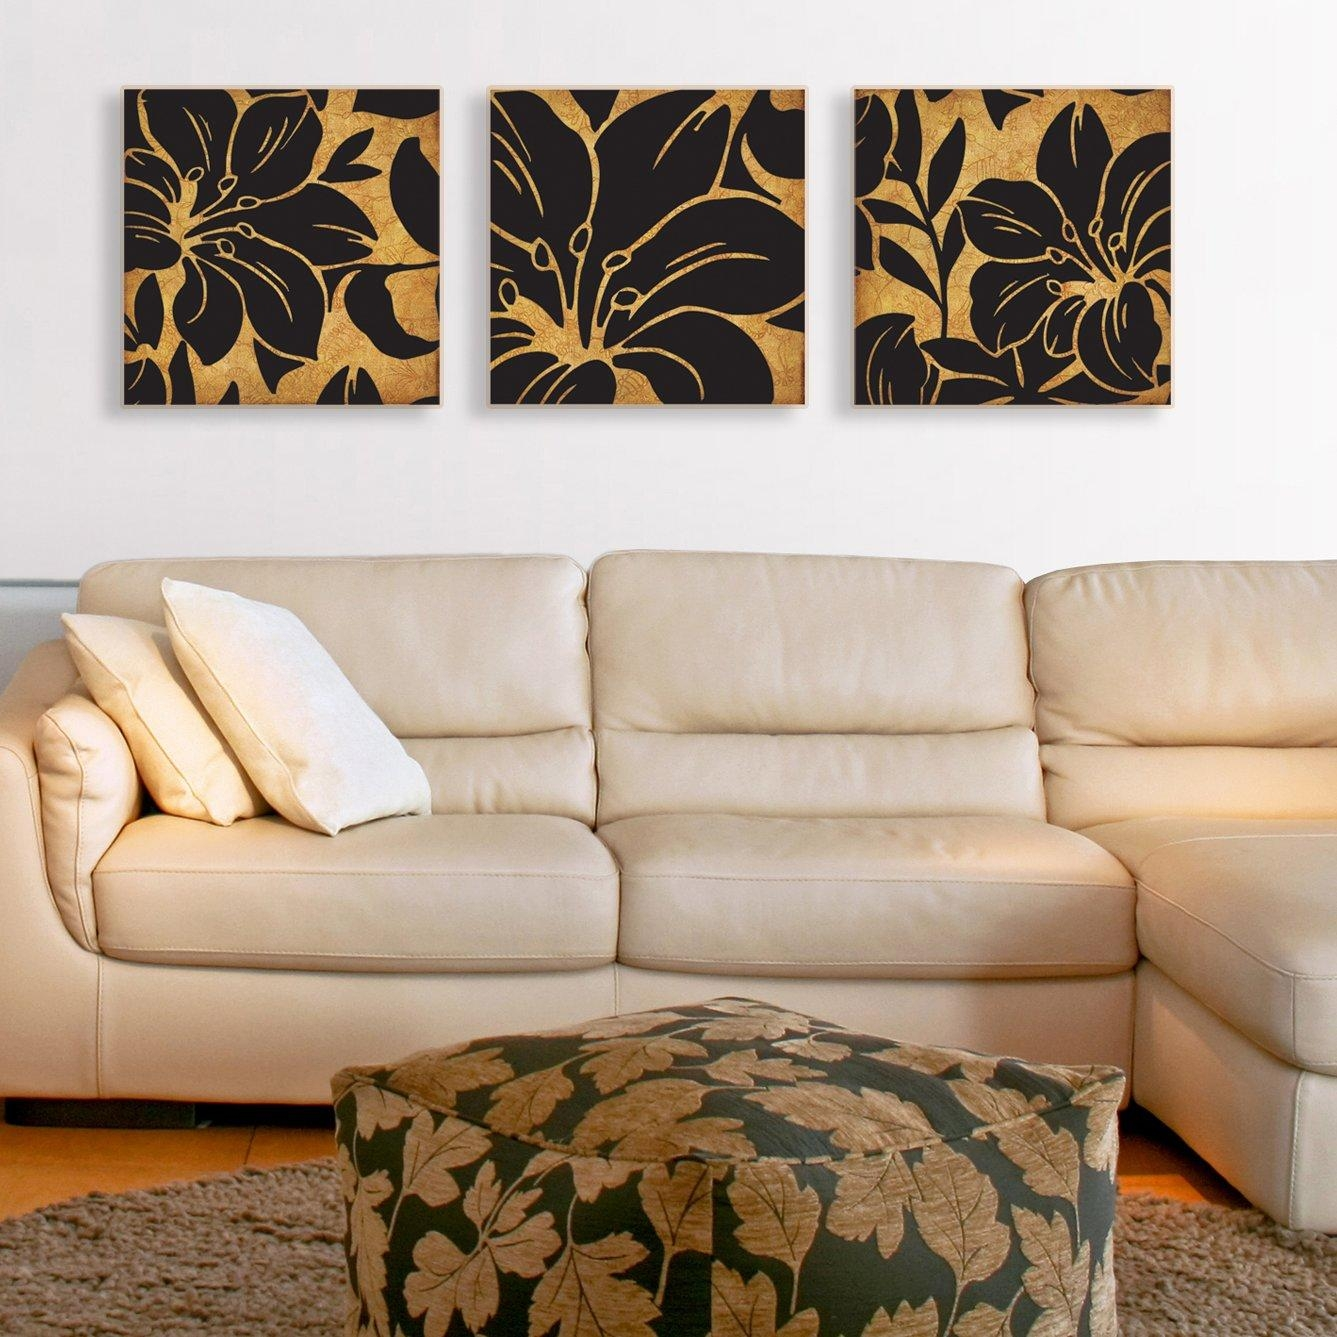 3 Piece Canvas Wall Art | Roselawnlutheran Pertaining To Canvas Wall Art 3 Piece Sets (View 5 of 20)